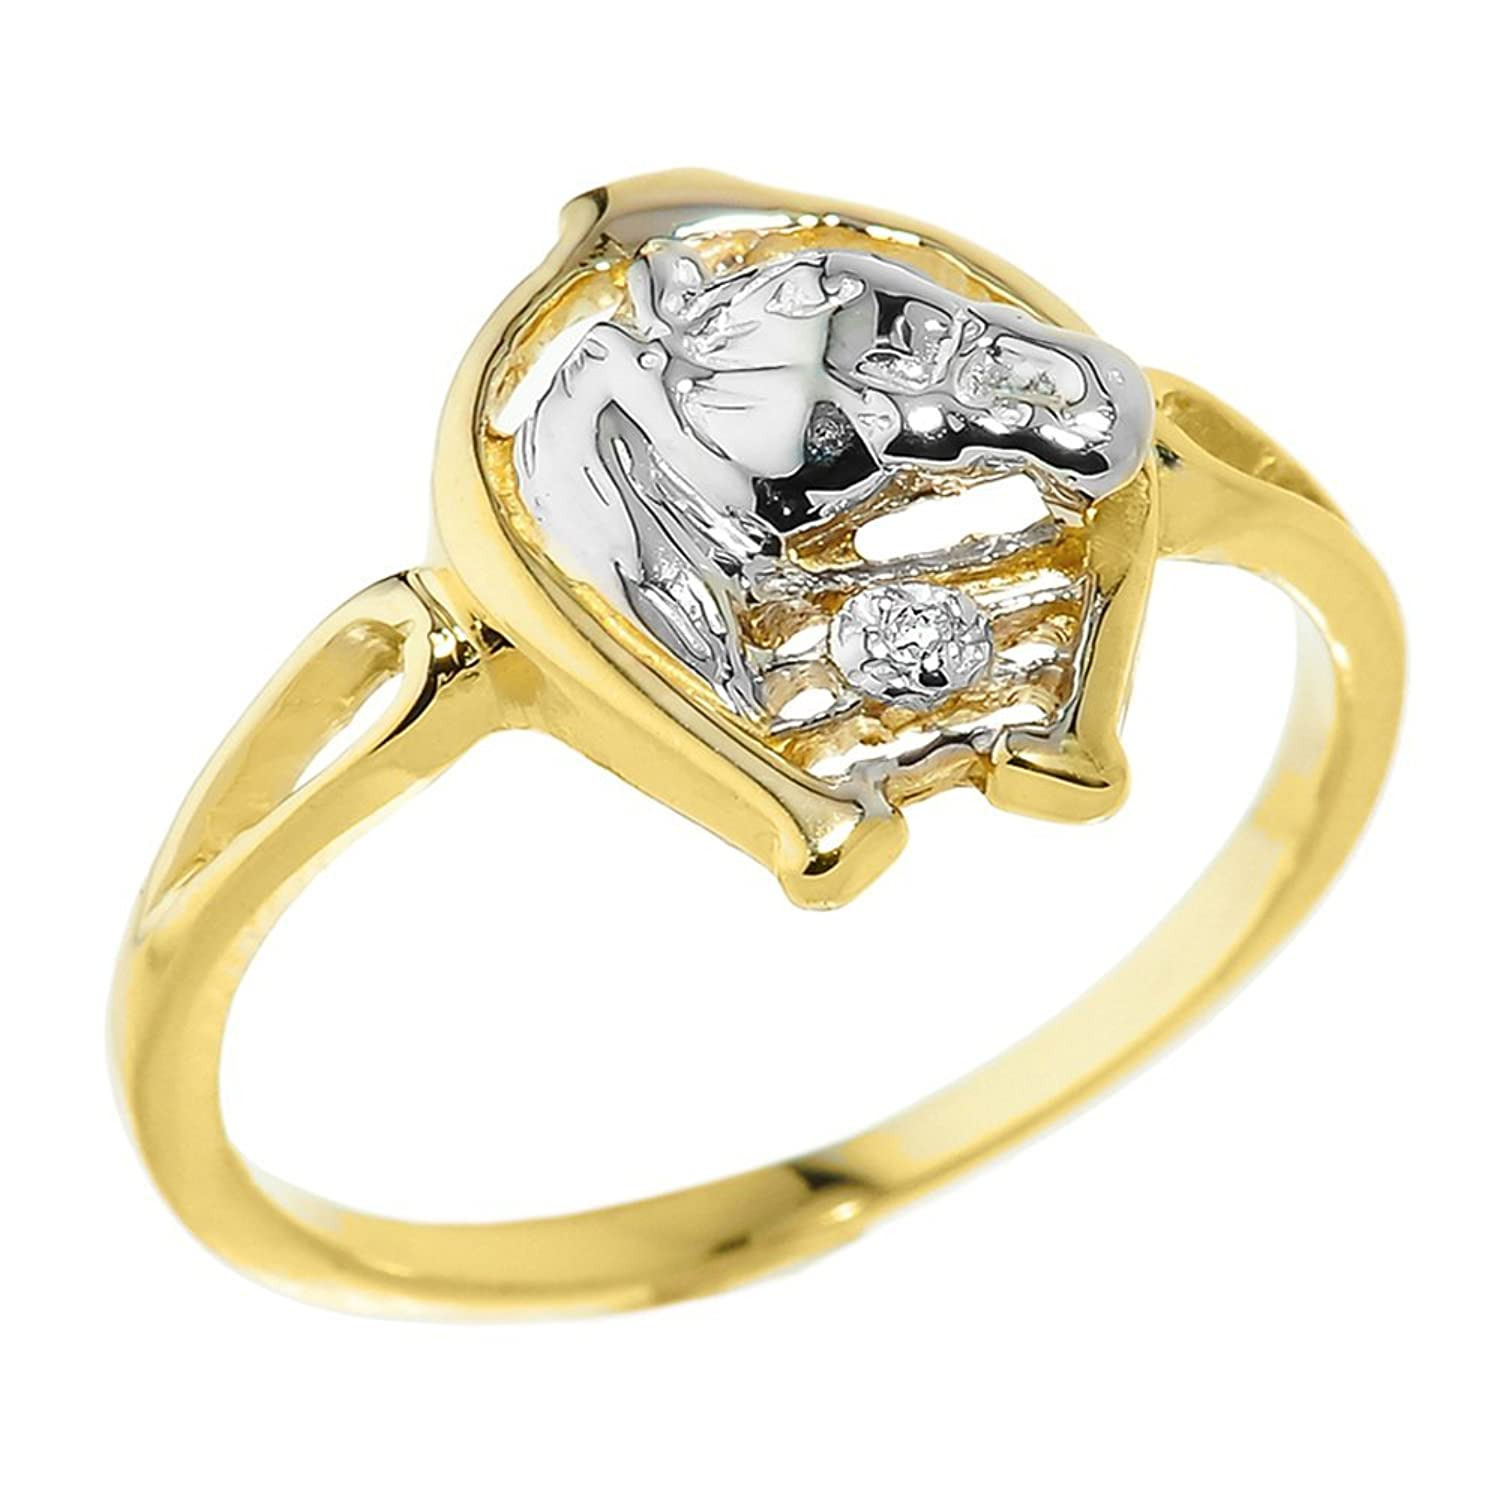 14k Yellow Gold Solitaire Diamond Horseshoe with Horse Head Ring